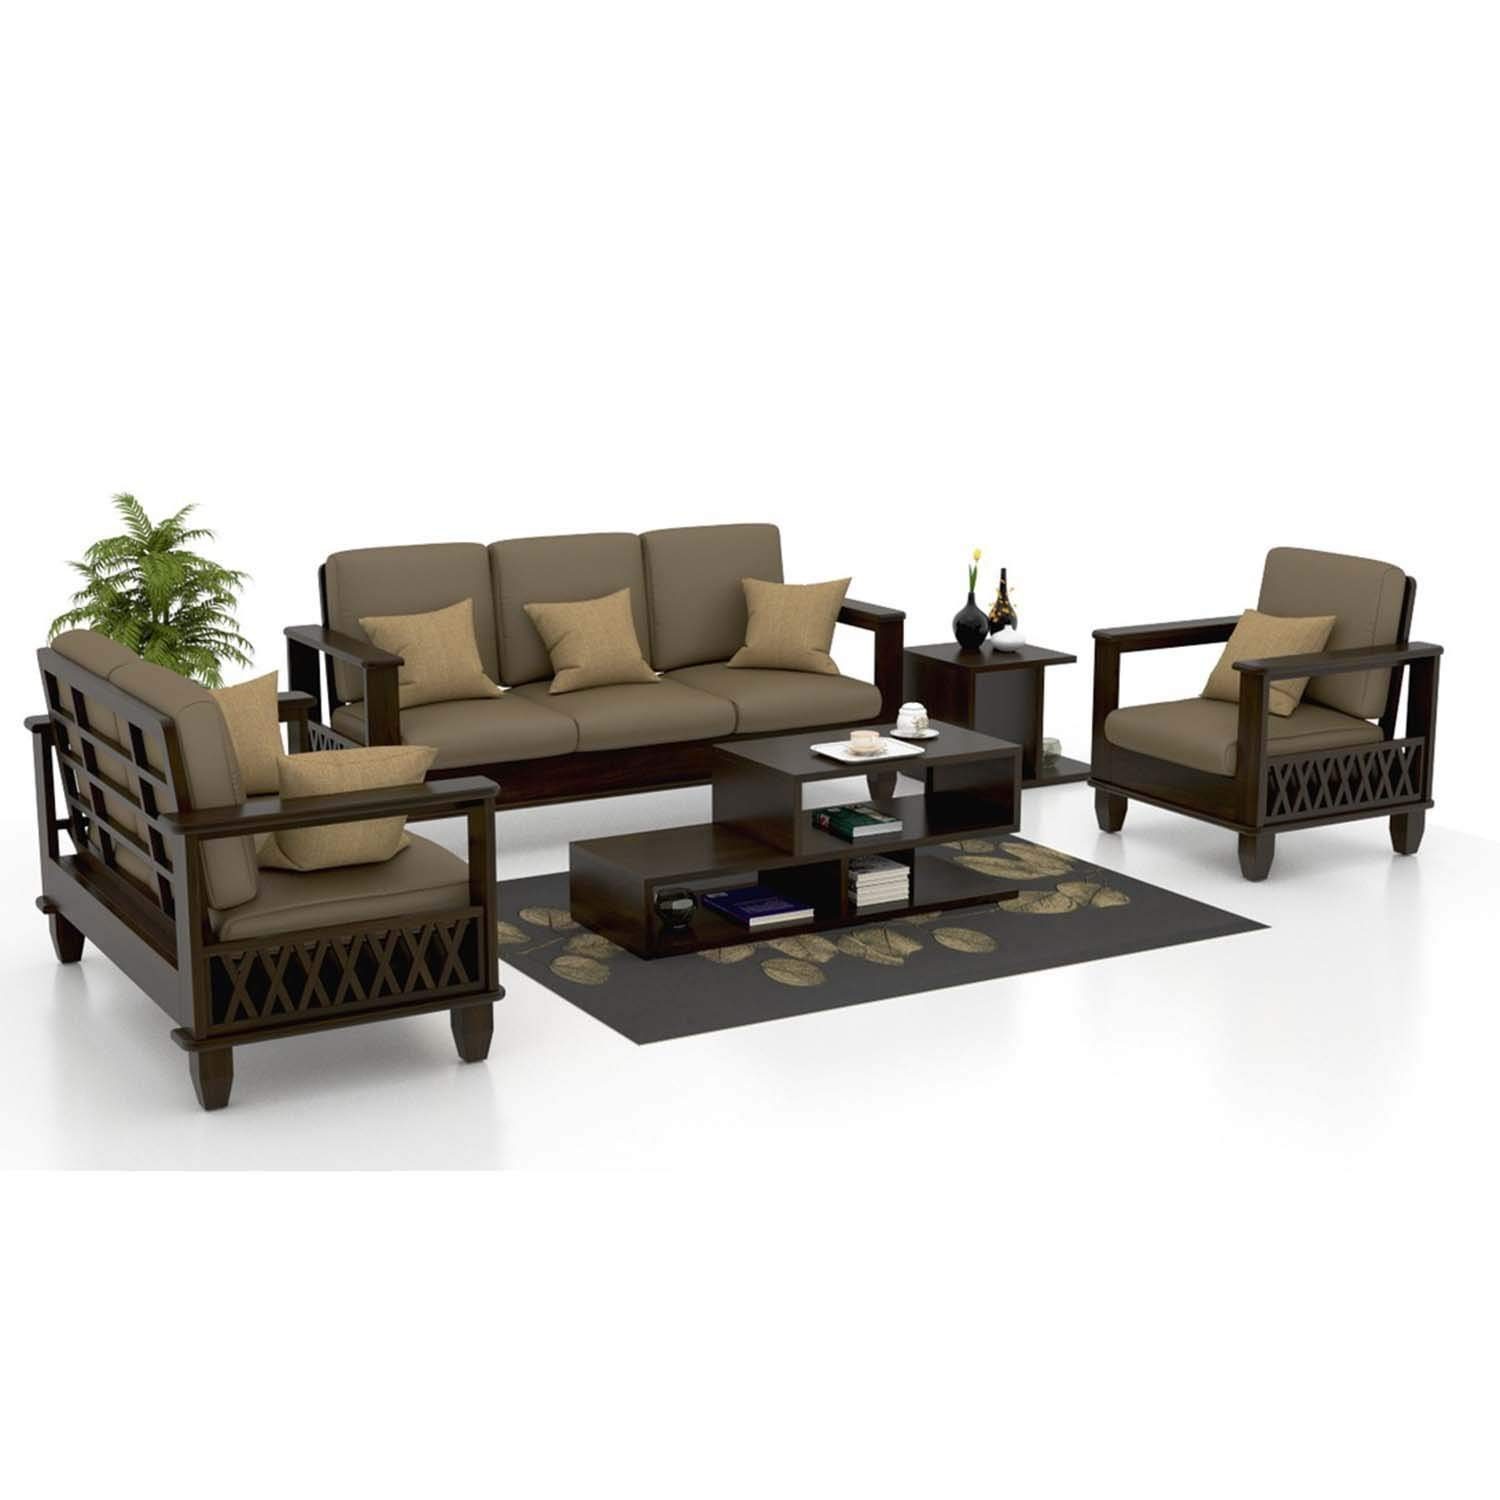 efb34903bf6 Mamta Decoration Sheesham Wood 3+2+1 Seater Sofa Set (Walnut